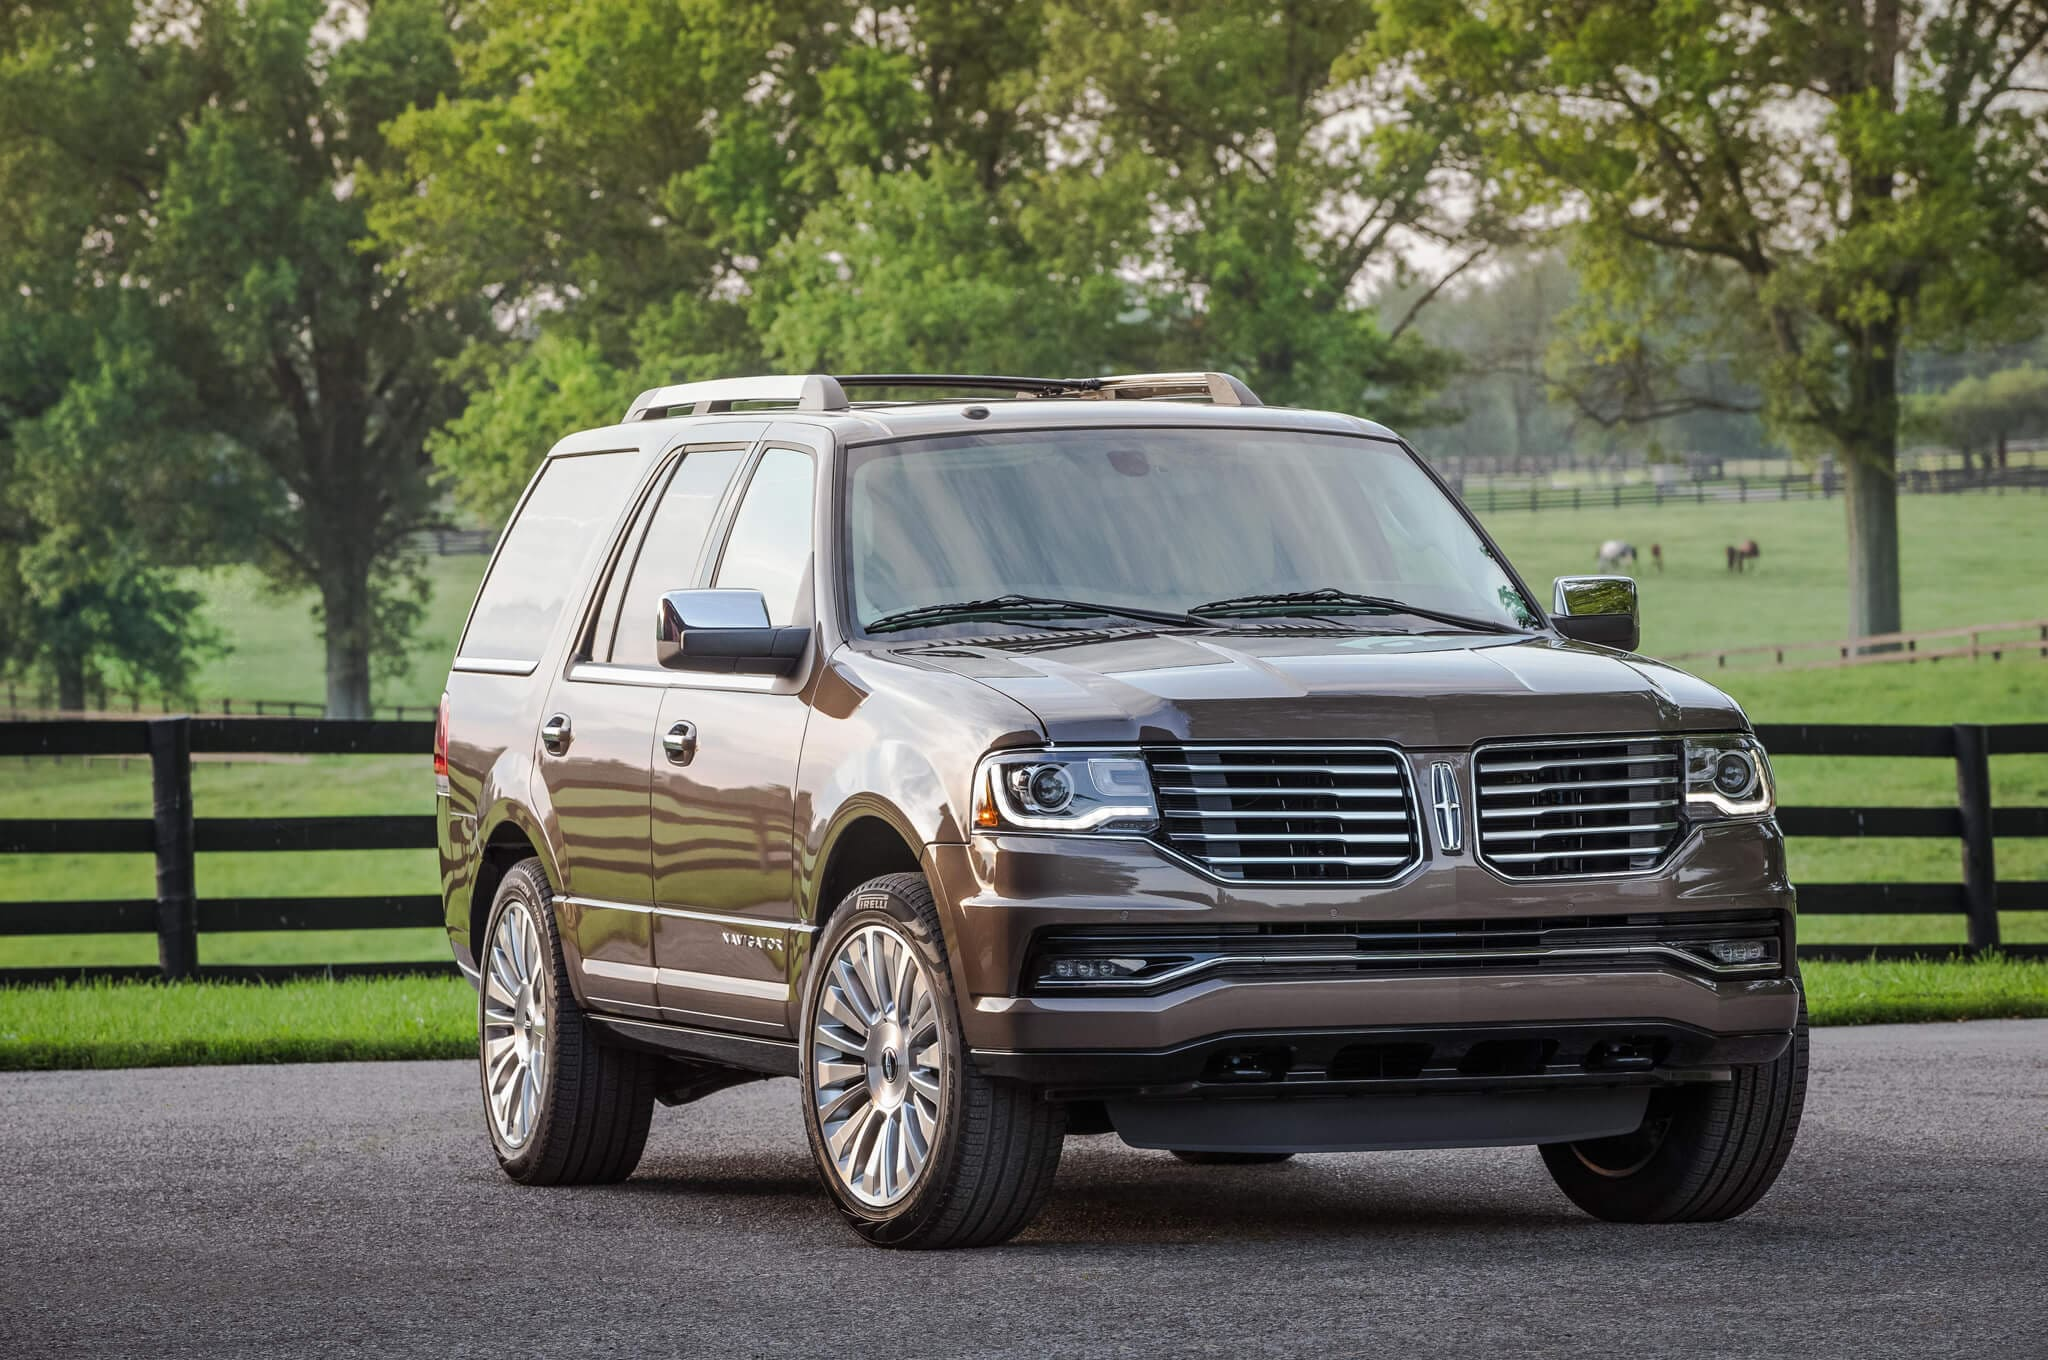 2017 Lincoln Navigator | Photo Source: TruckTrend.com